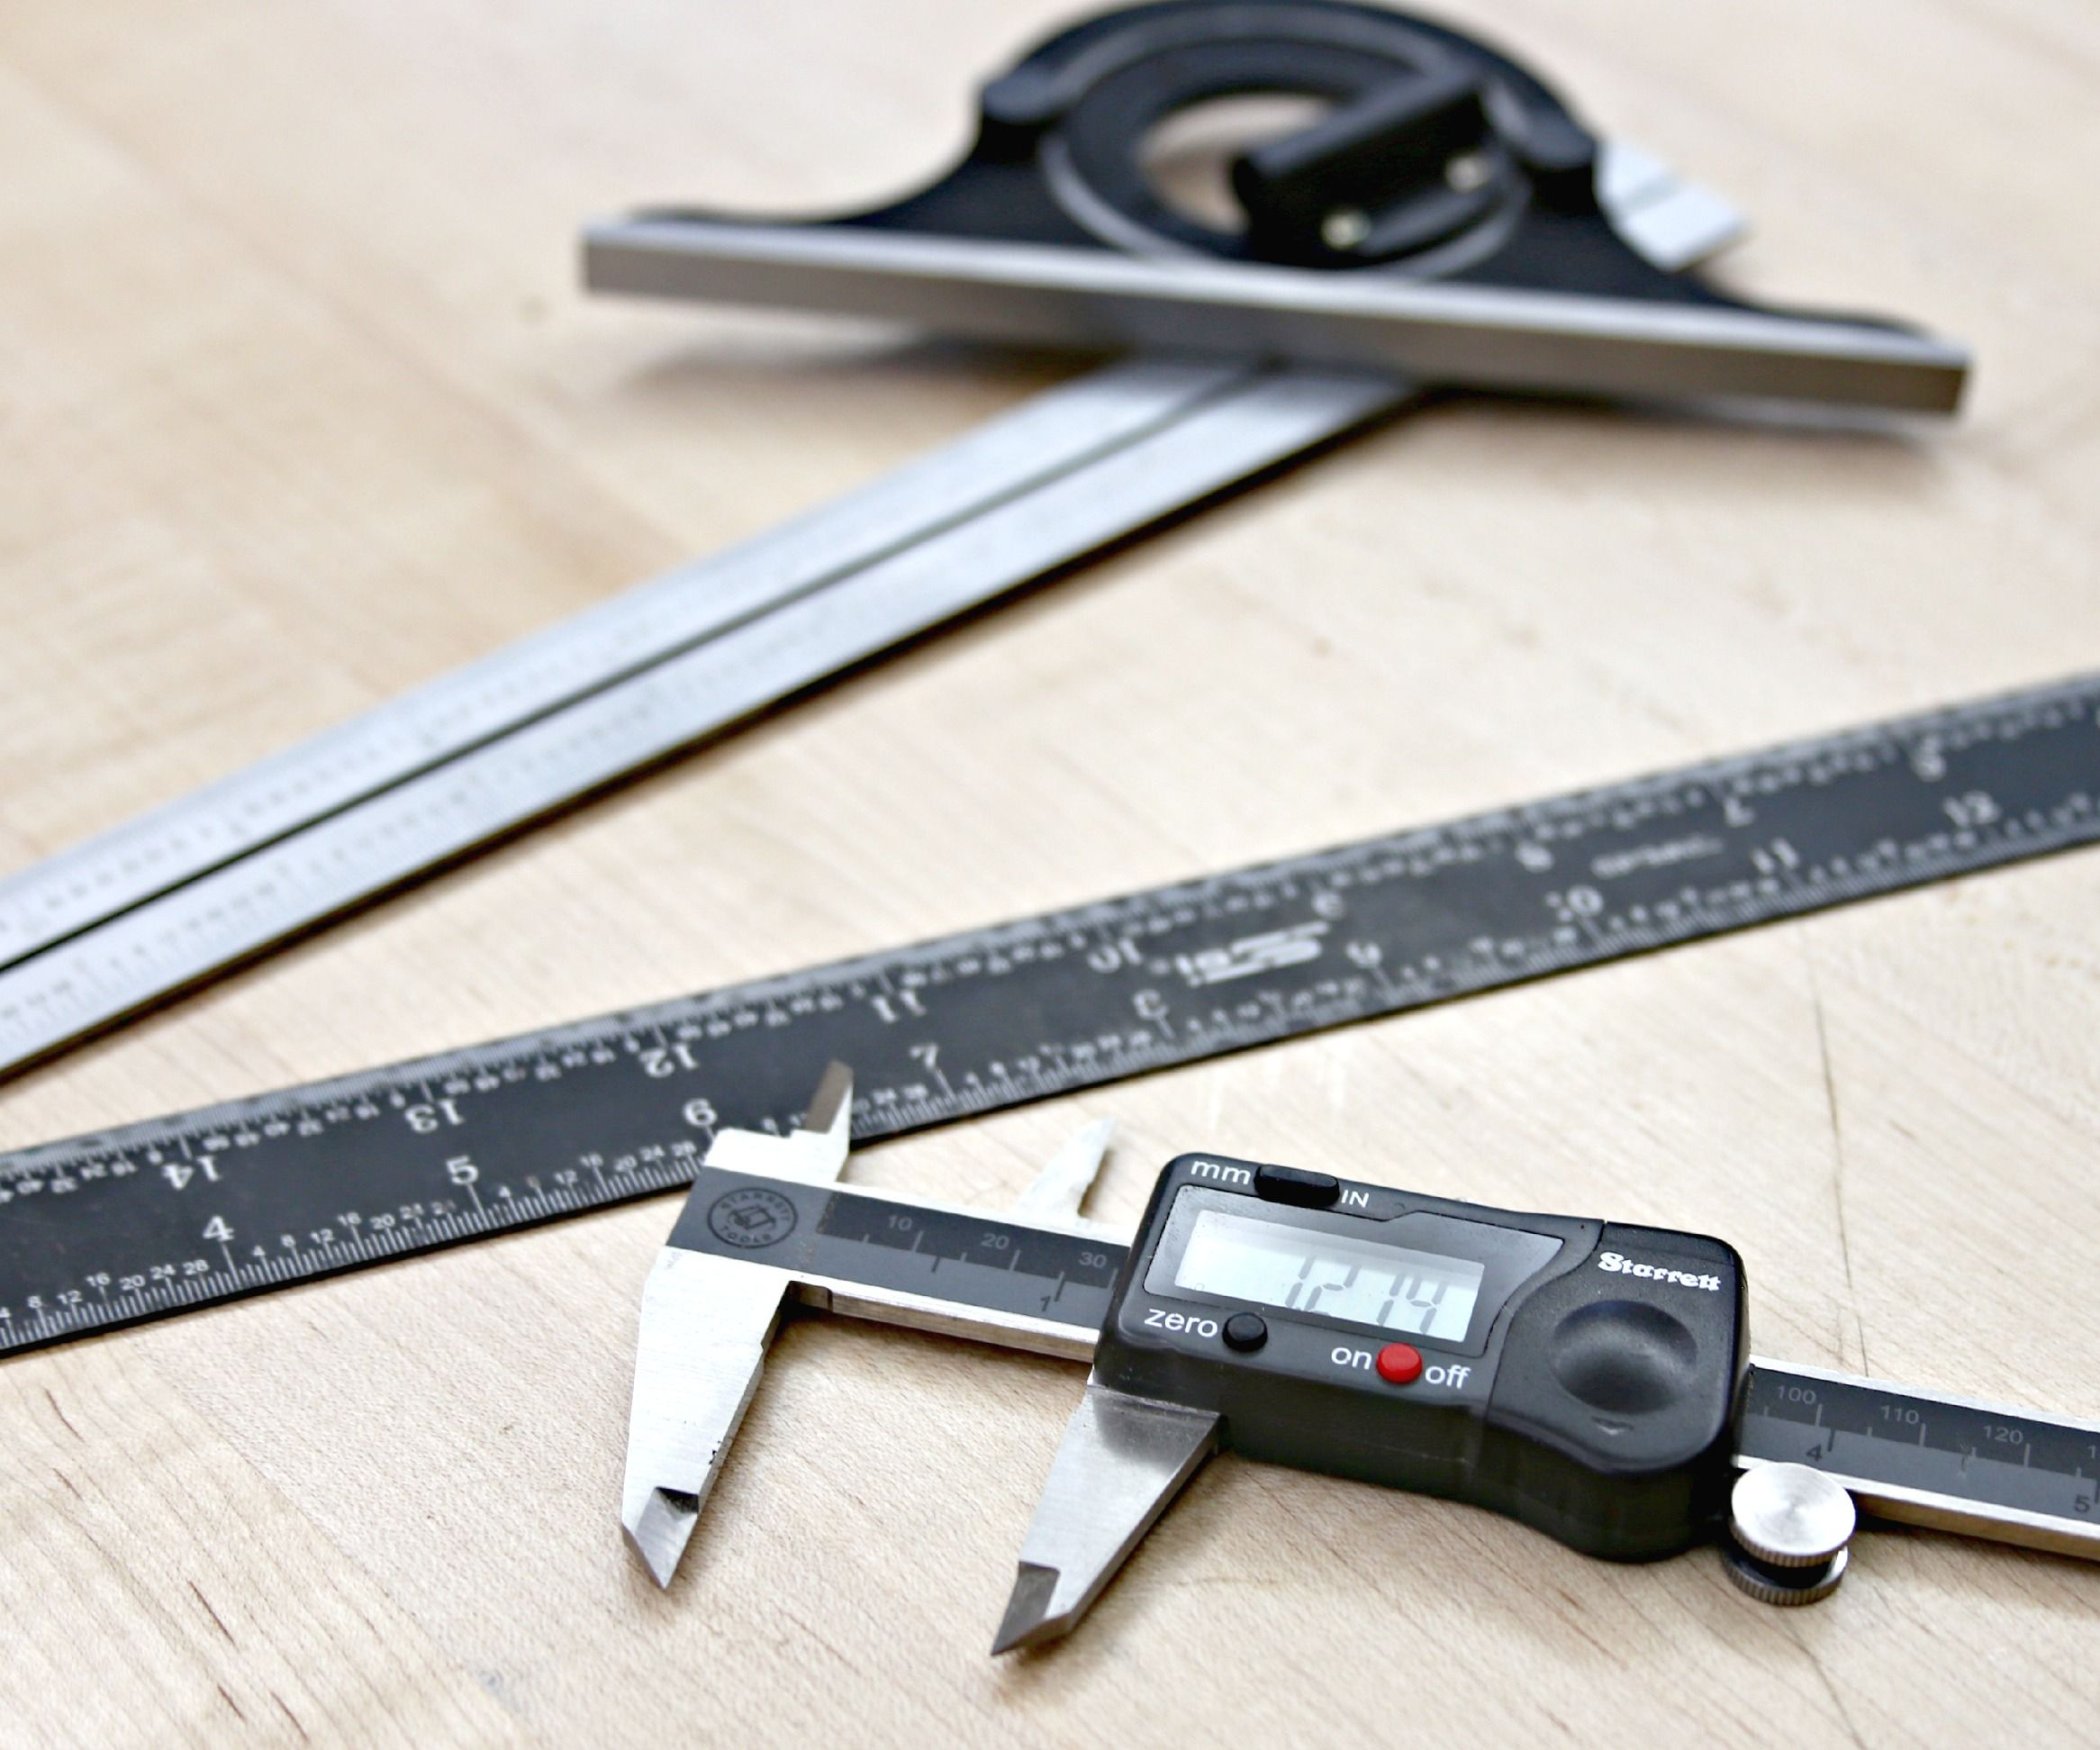 How to Measure Things without a Ruler